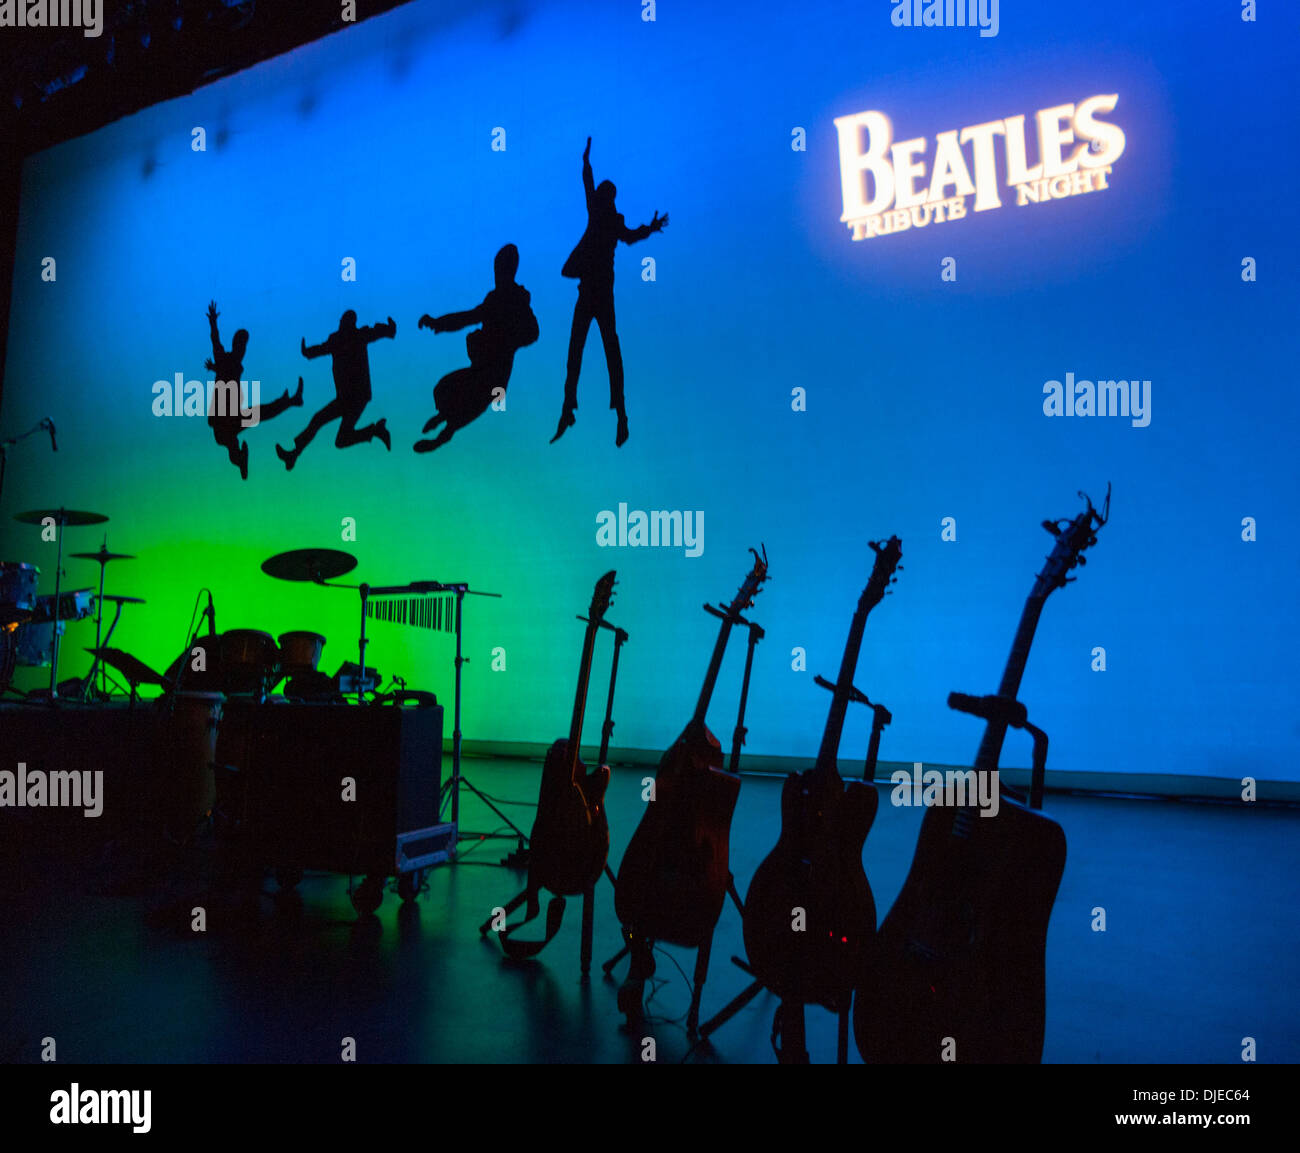 Beatles Tribute stage before a concert - Stock Image